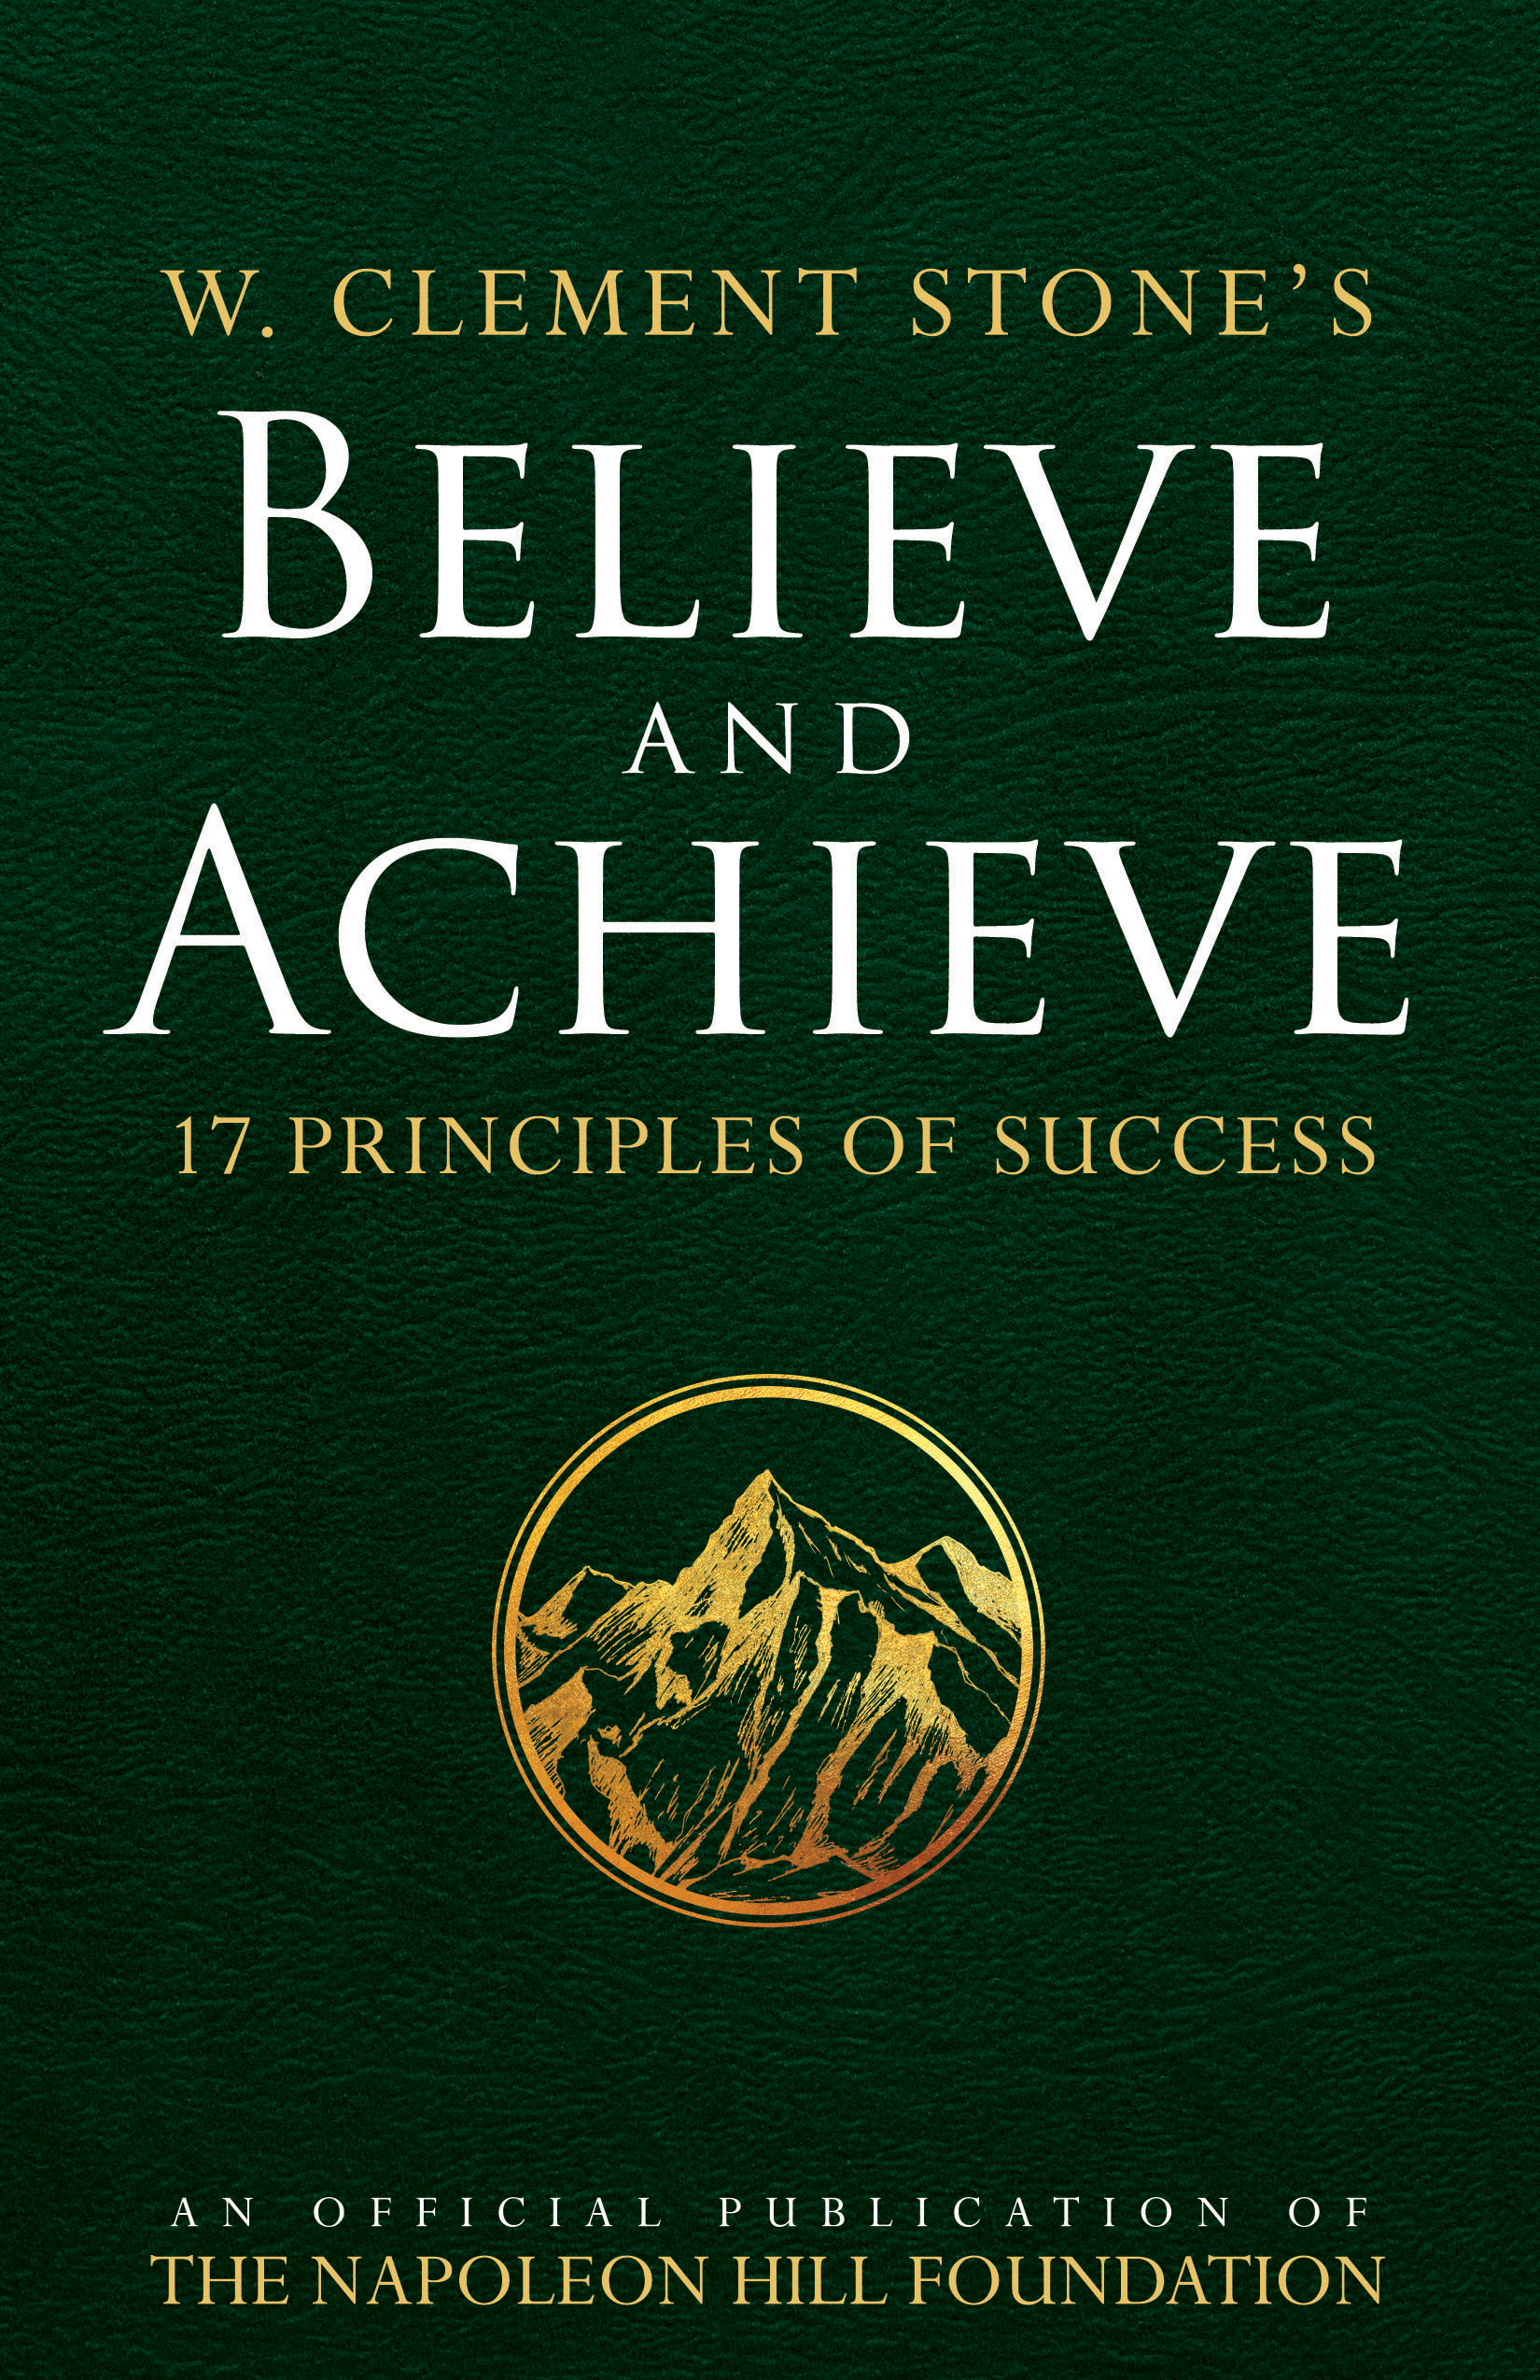 W. Clement Stone's Believe and Achieve - By w. clement stone